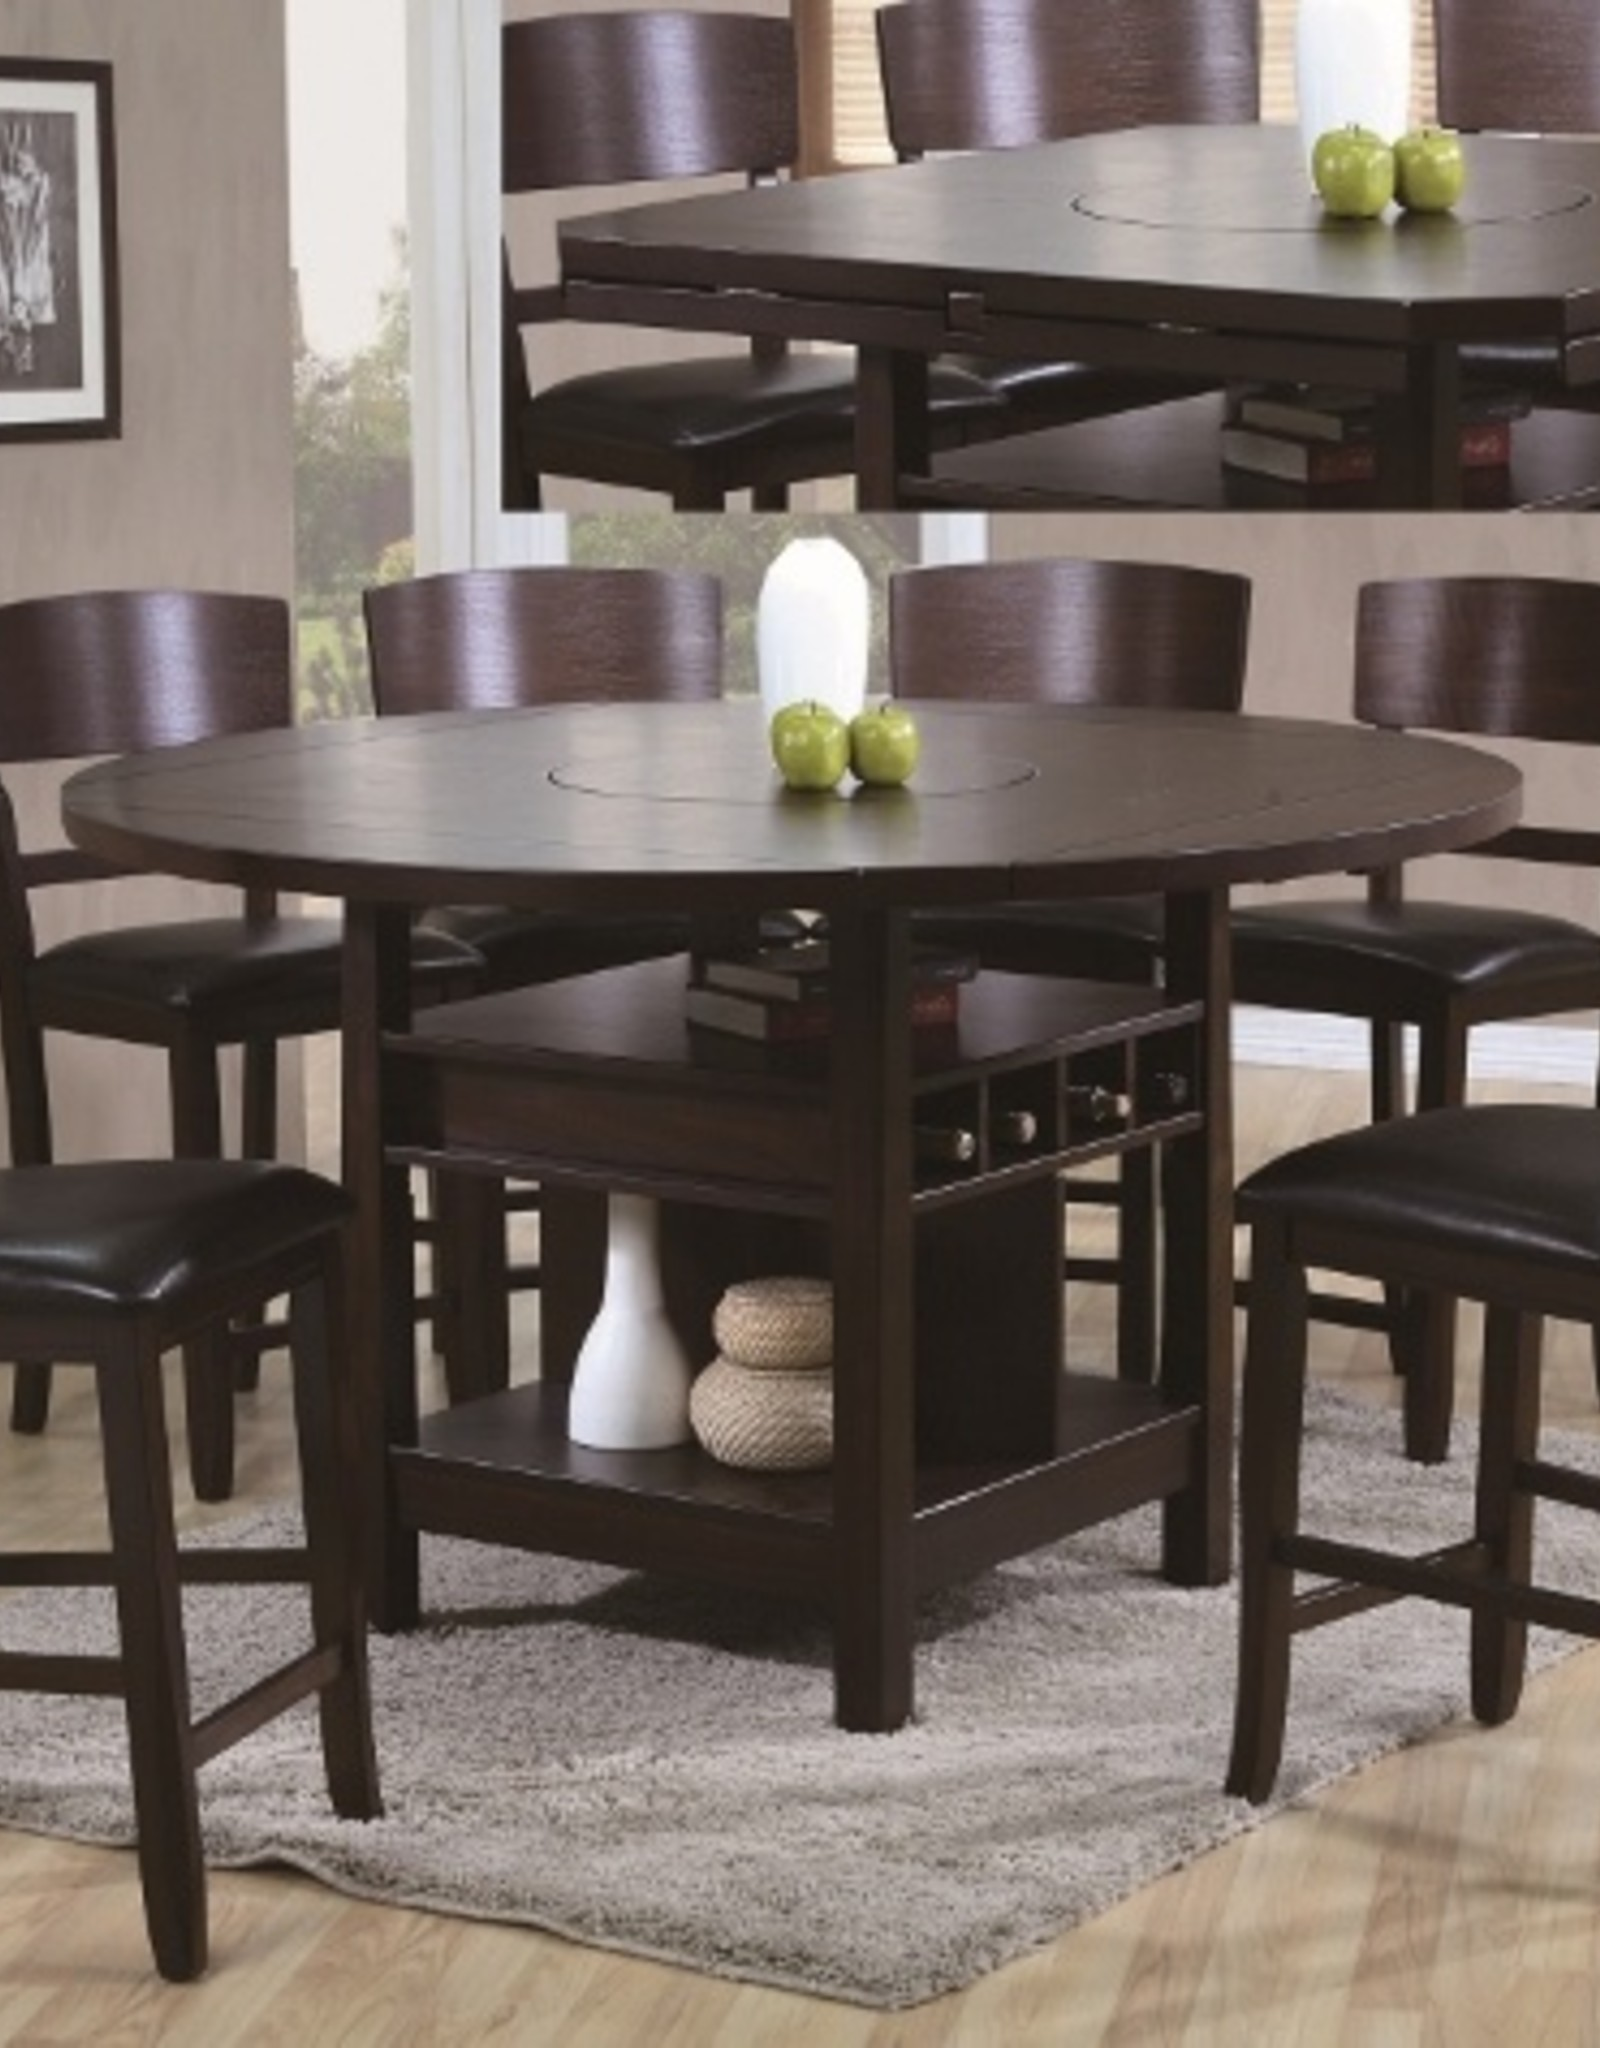 Crownmark Conner counter height table with 6 chairs